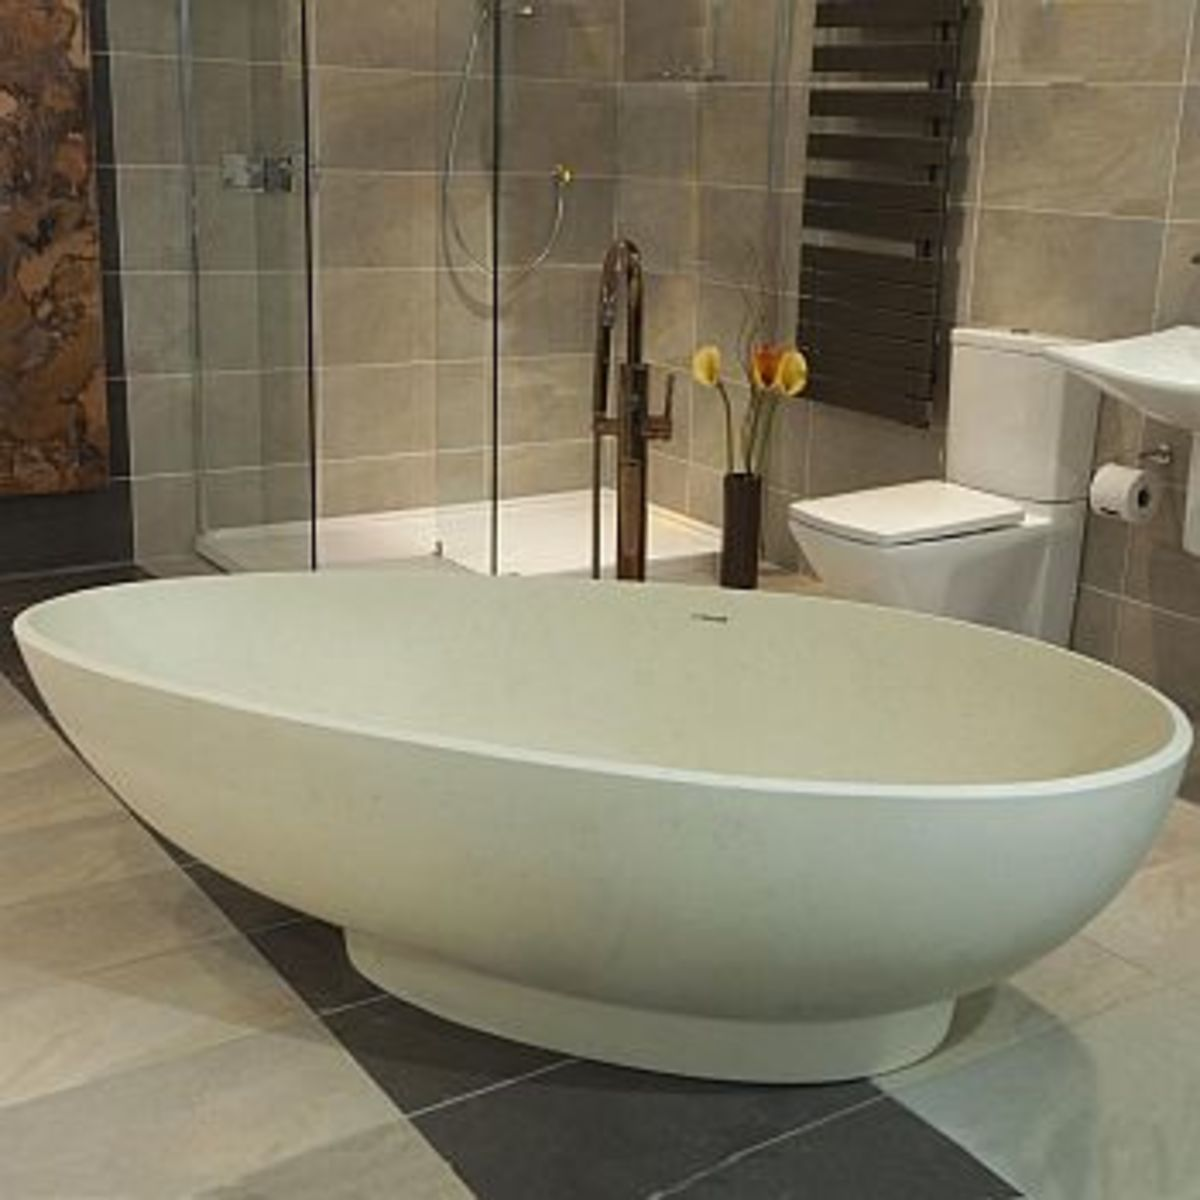 Olympian Nero Stone Bath by Boundary Bathrooms (unfortunately no longer available)